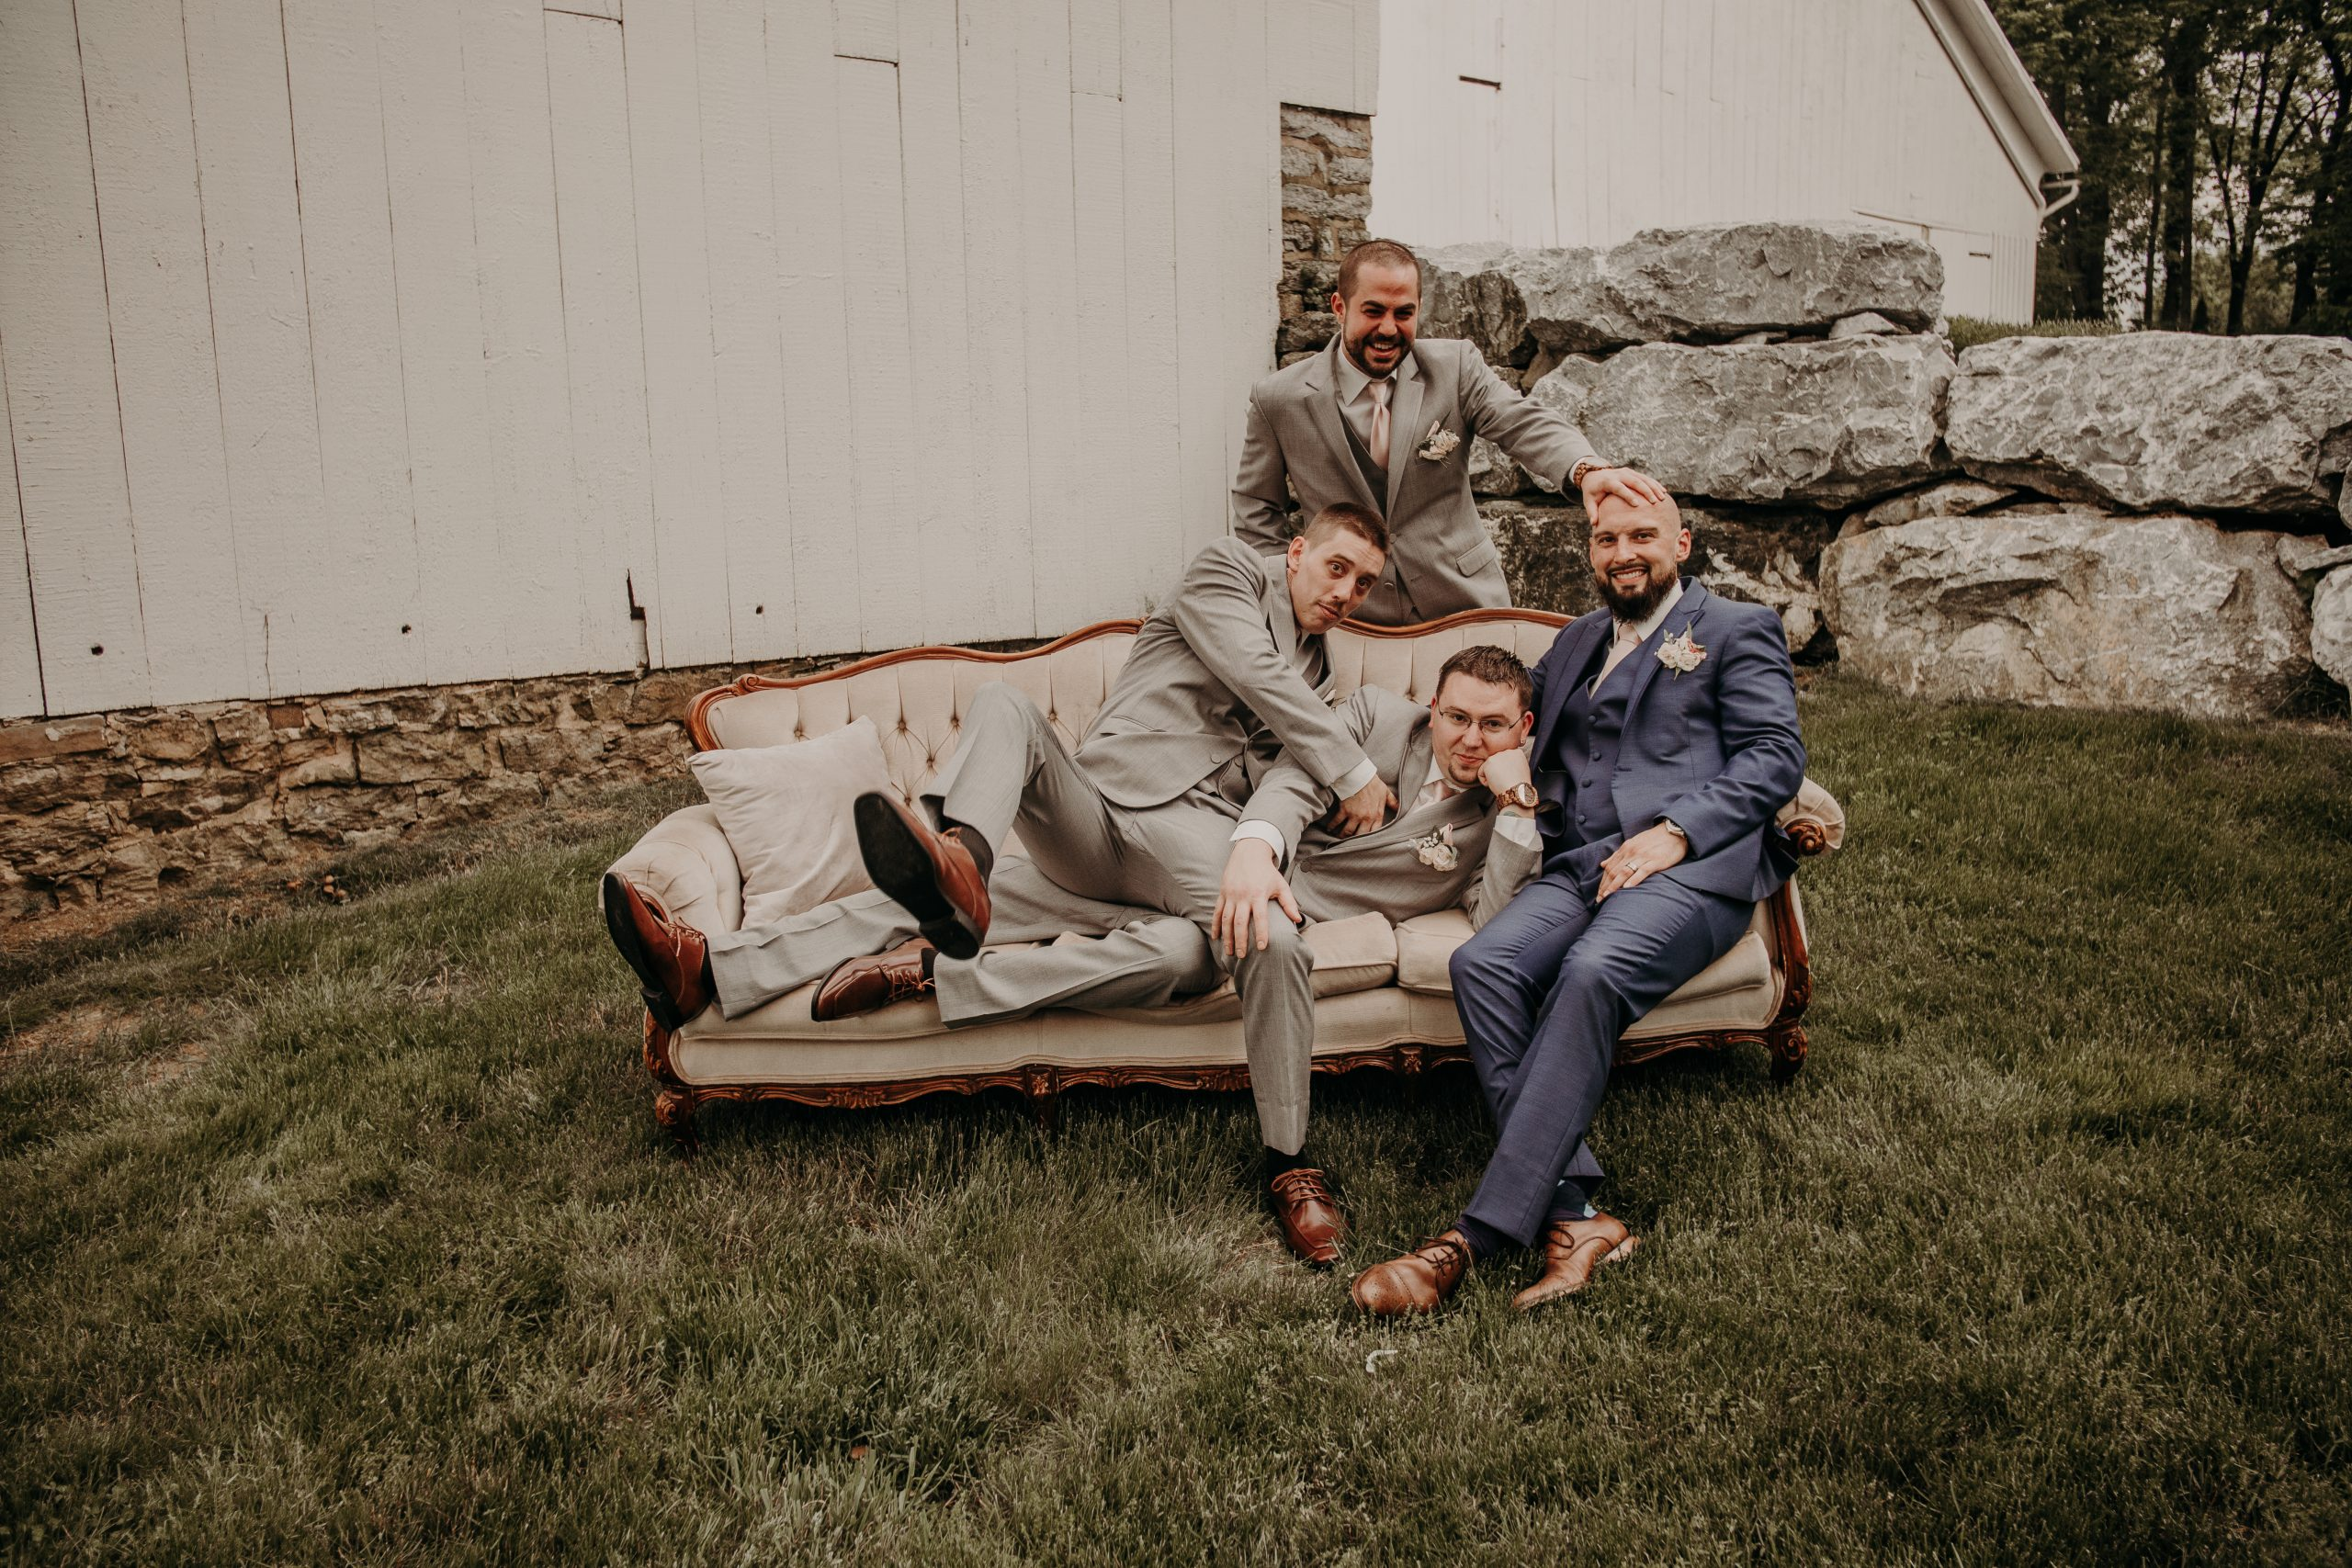 Utilizing antique furniture in photos adds a vintage feel. A timelessness. Christine and Richard wed on the Chestnut Hill Villa grounds on May of 2019. This organic ethereal styled wedding was captured by Garnet Dahlia Photography and featured on Dream Weddings.